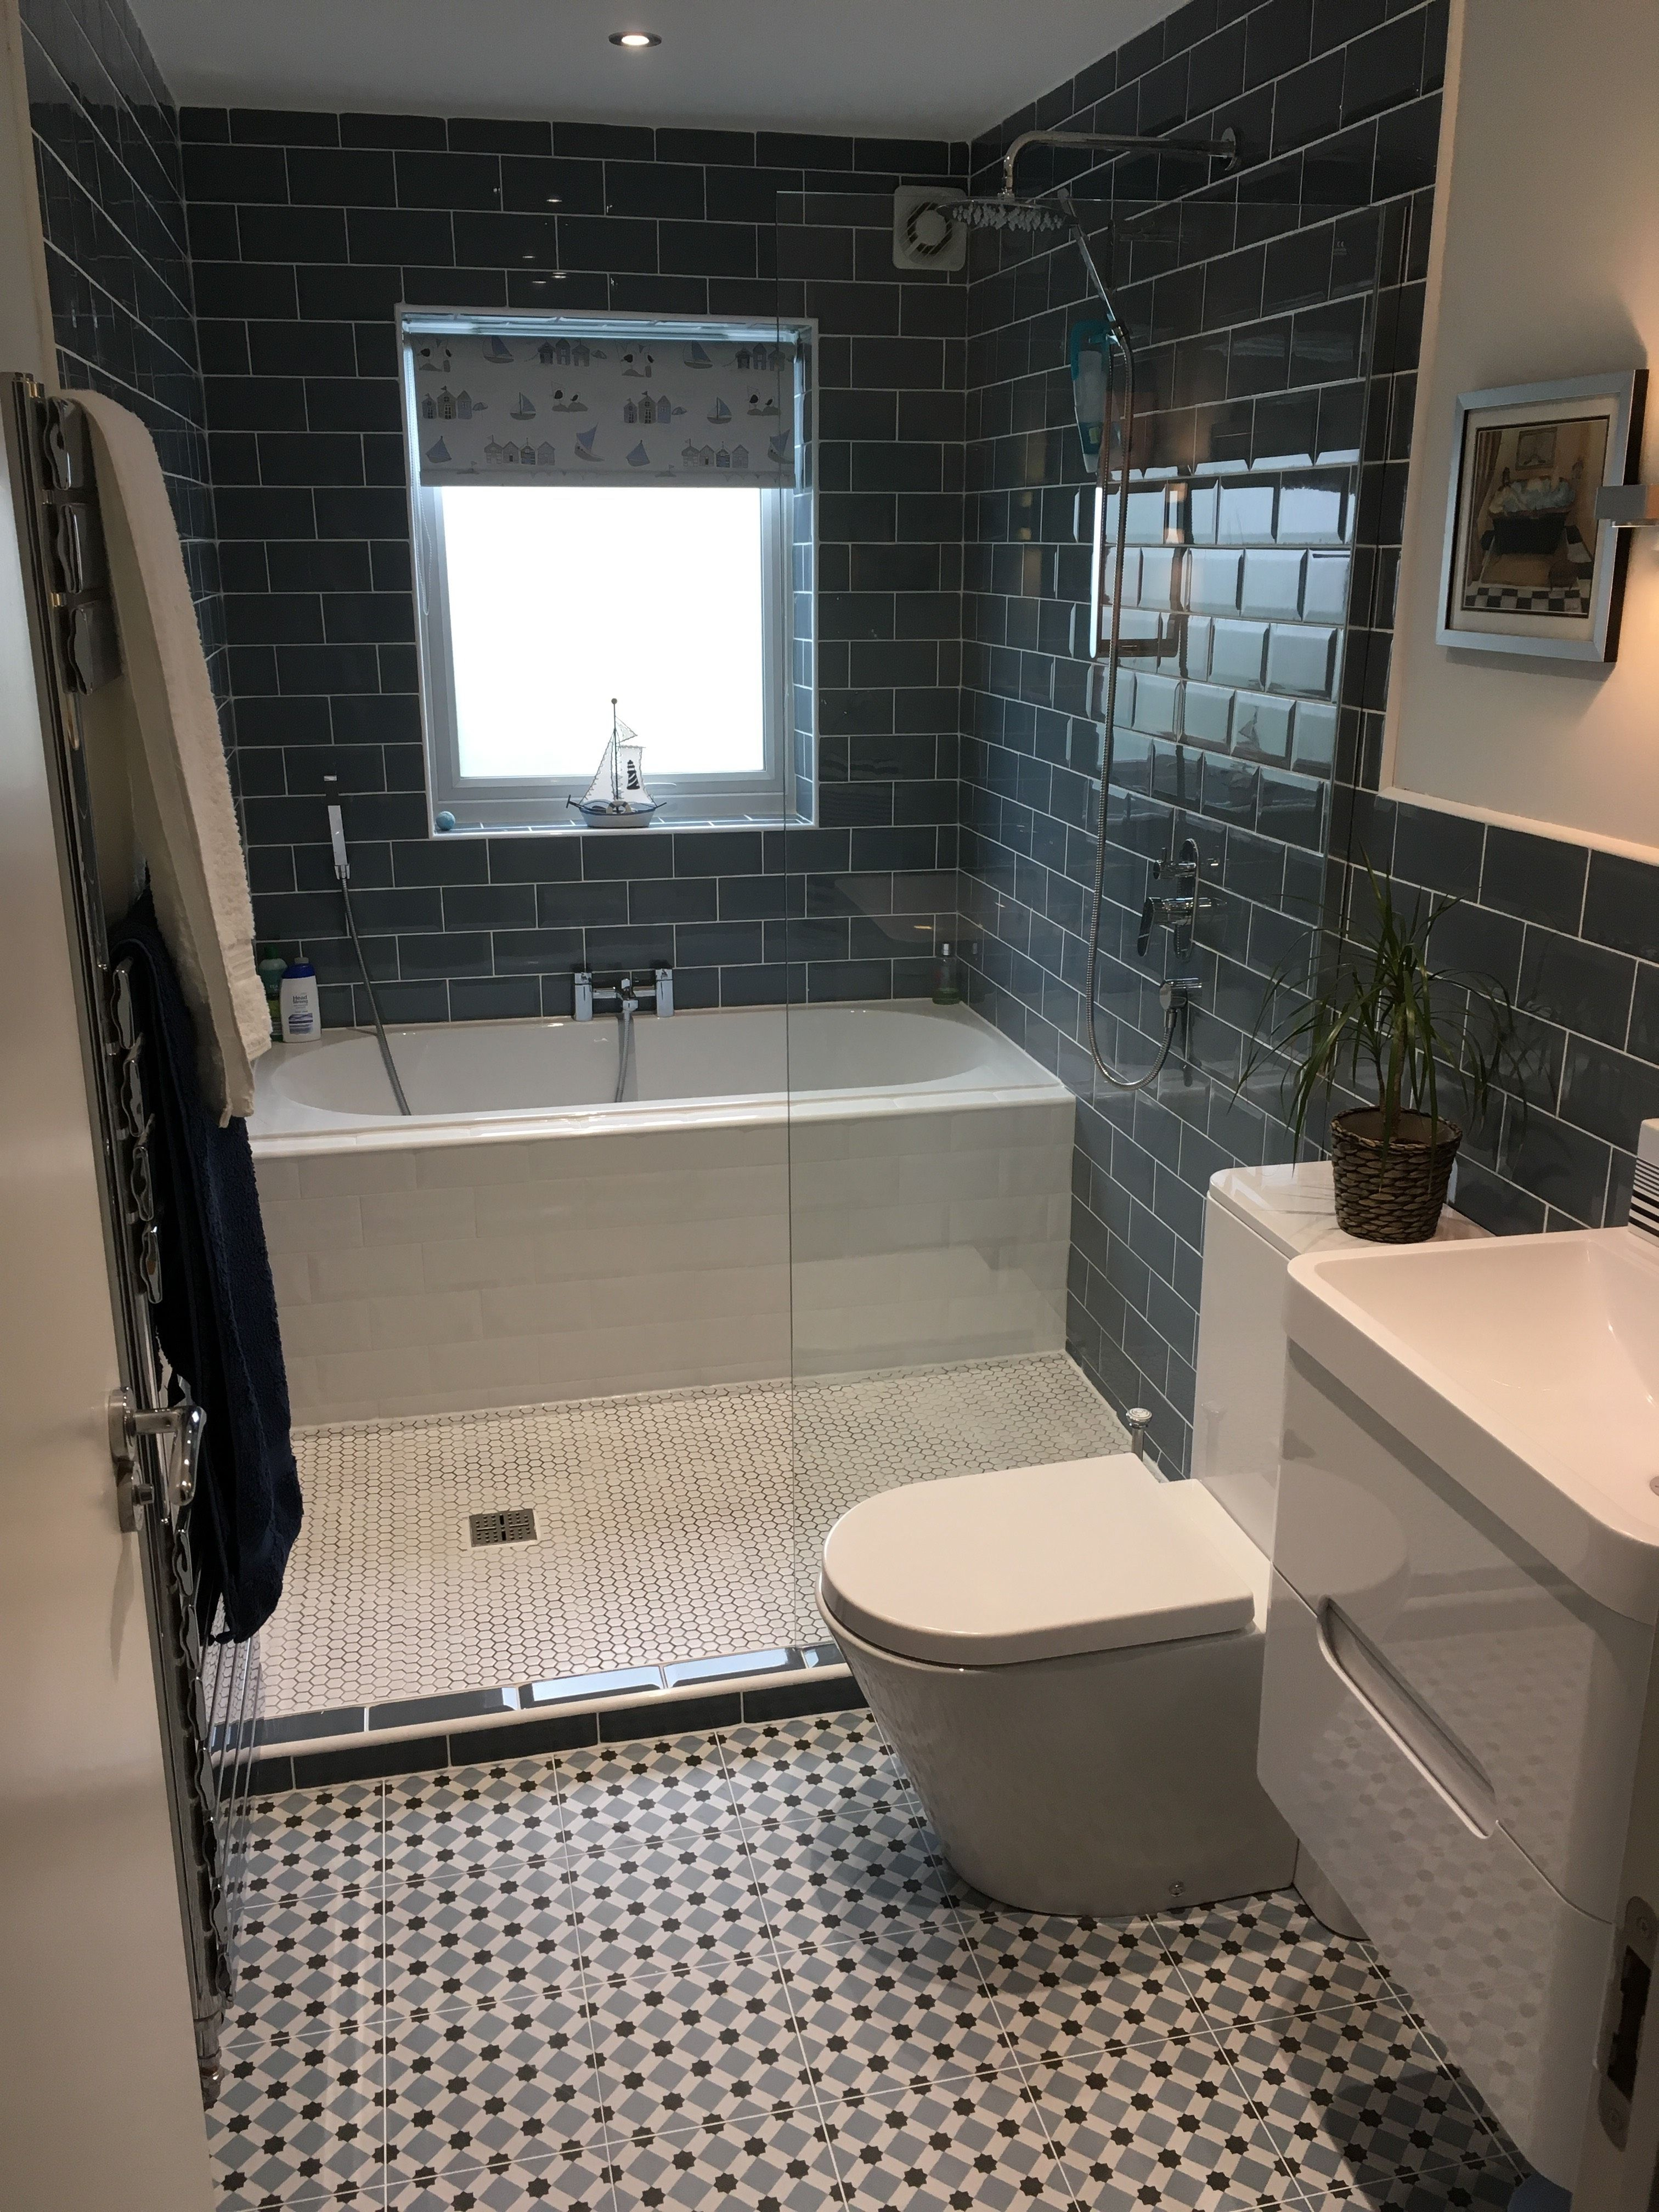 Optimise Your Space With These Smart Small Bathroom Ideas Bathroom